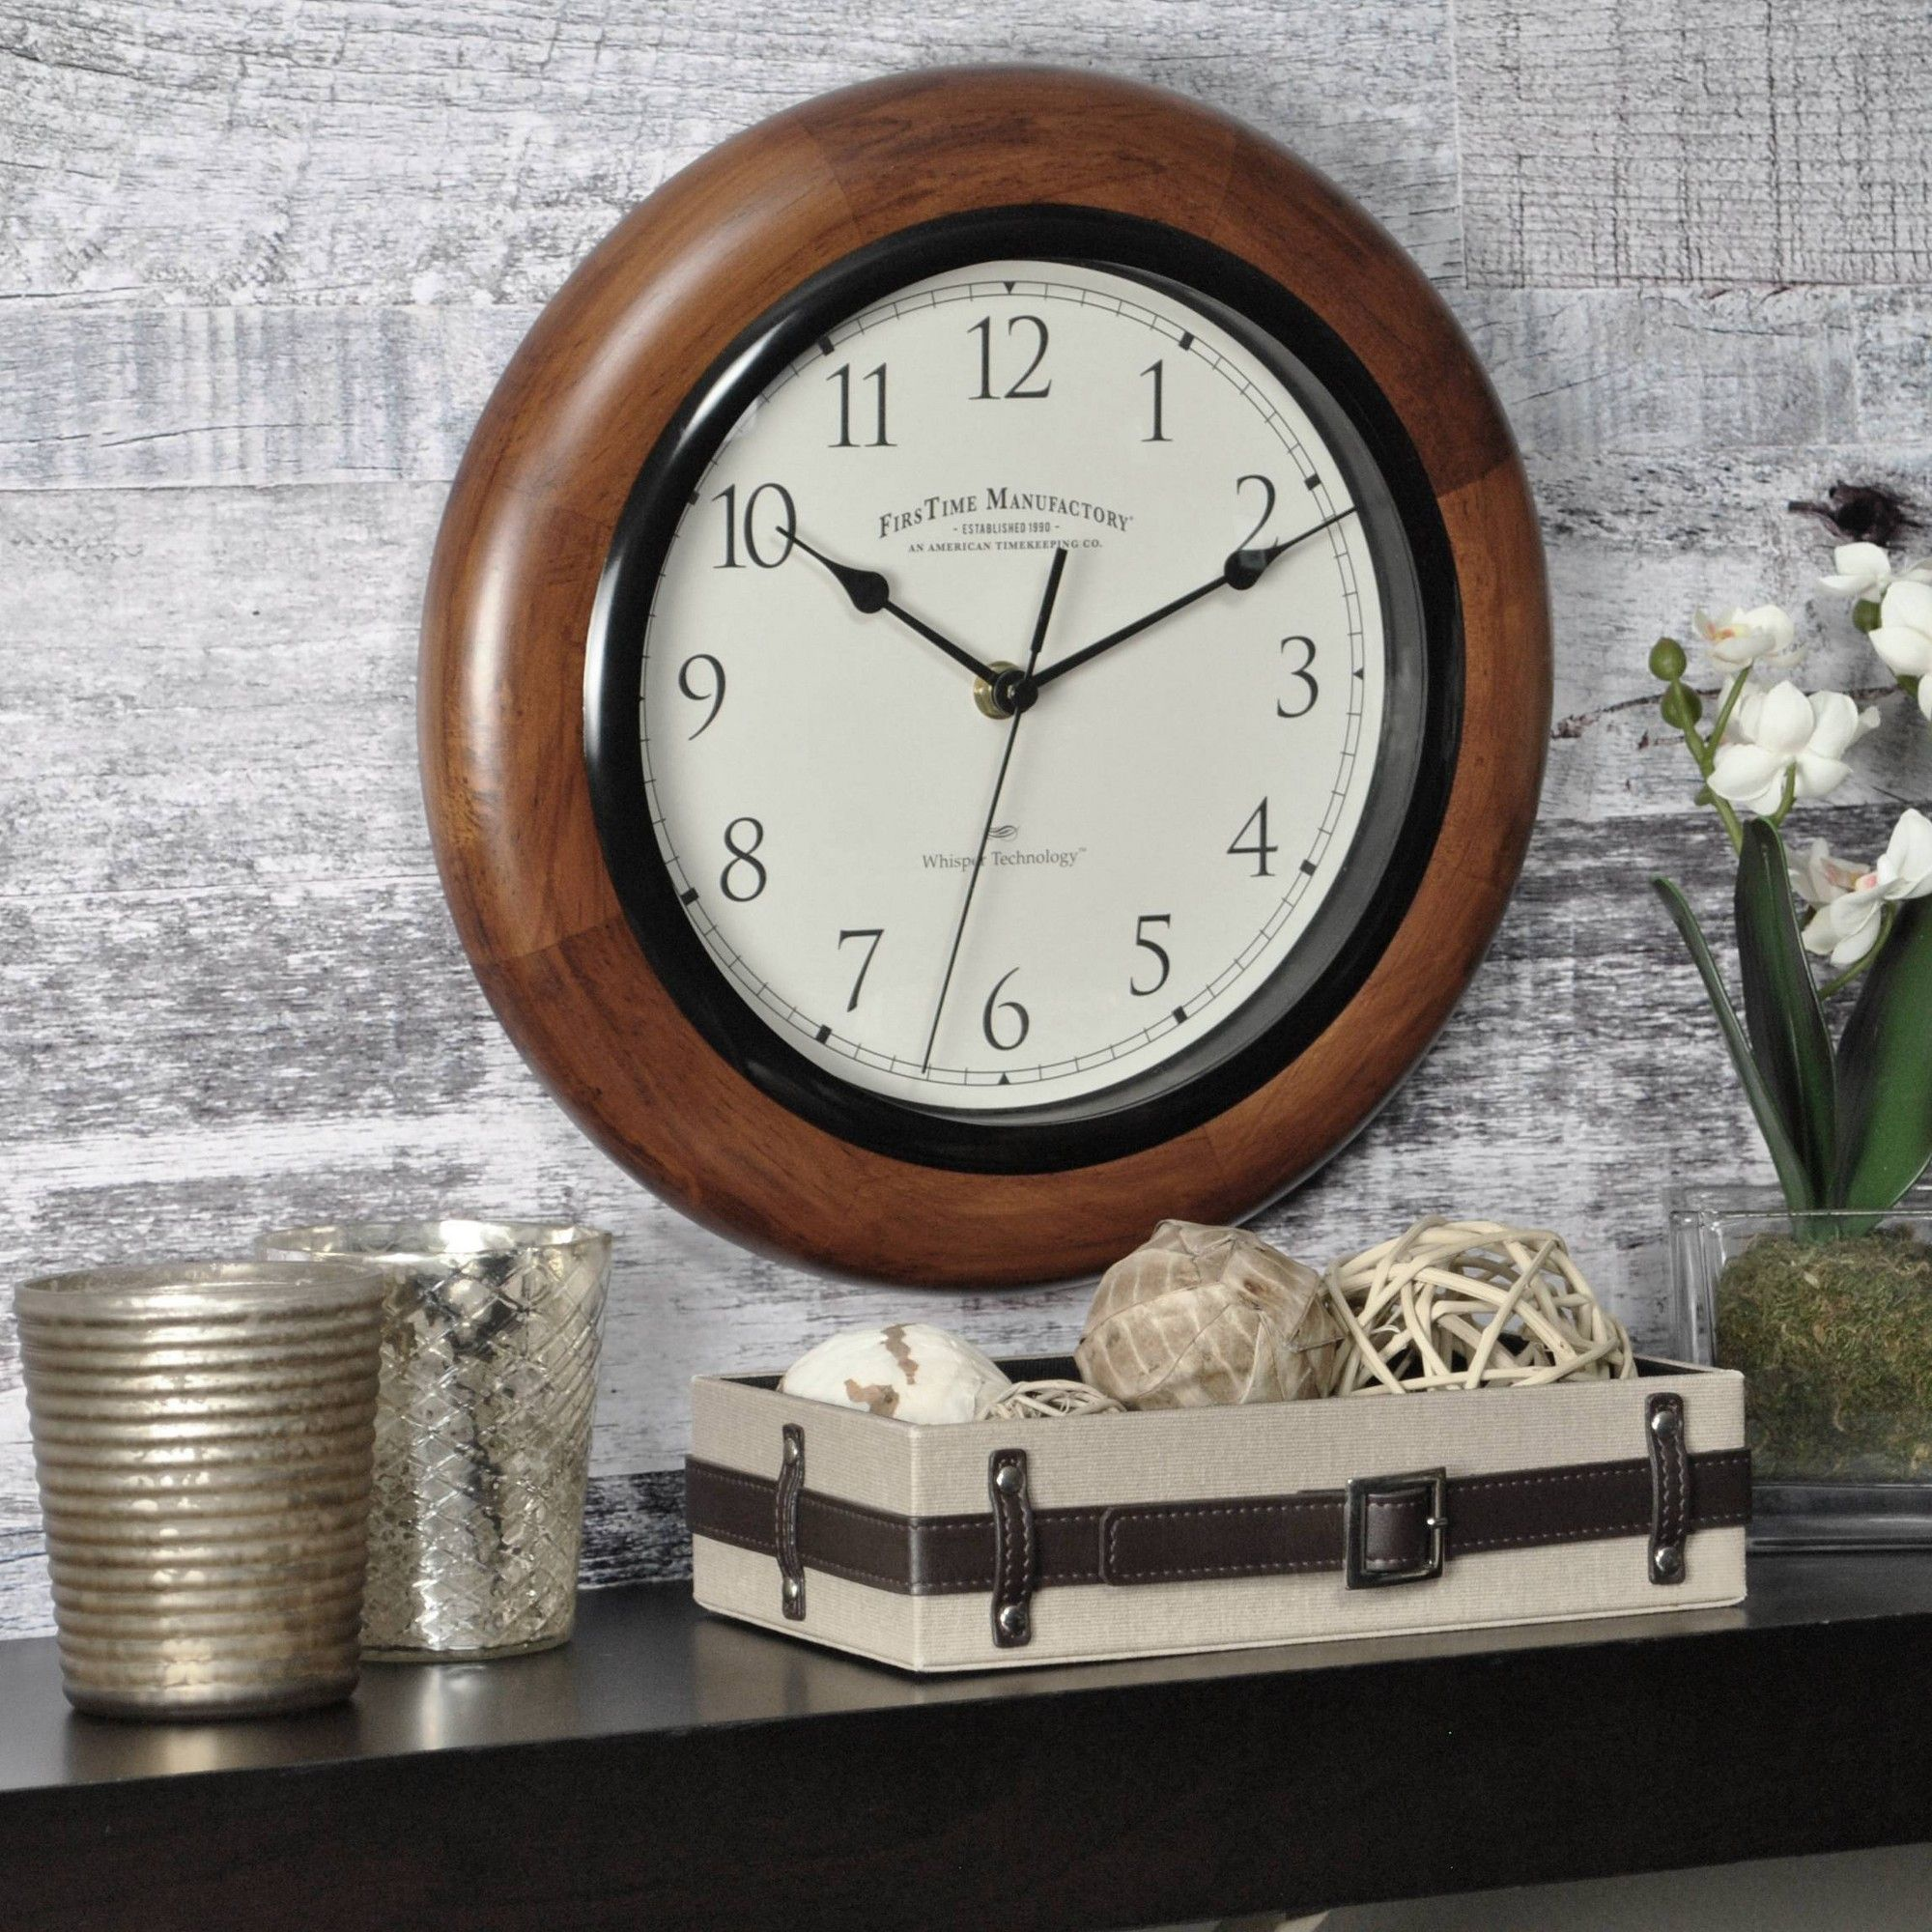 11 Casual Round Wall Clock Walnut Finish Firstime Round Wall Clocks Distressed Wall Clock Large Digital Wall Clock